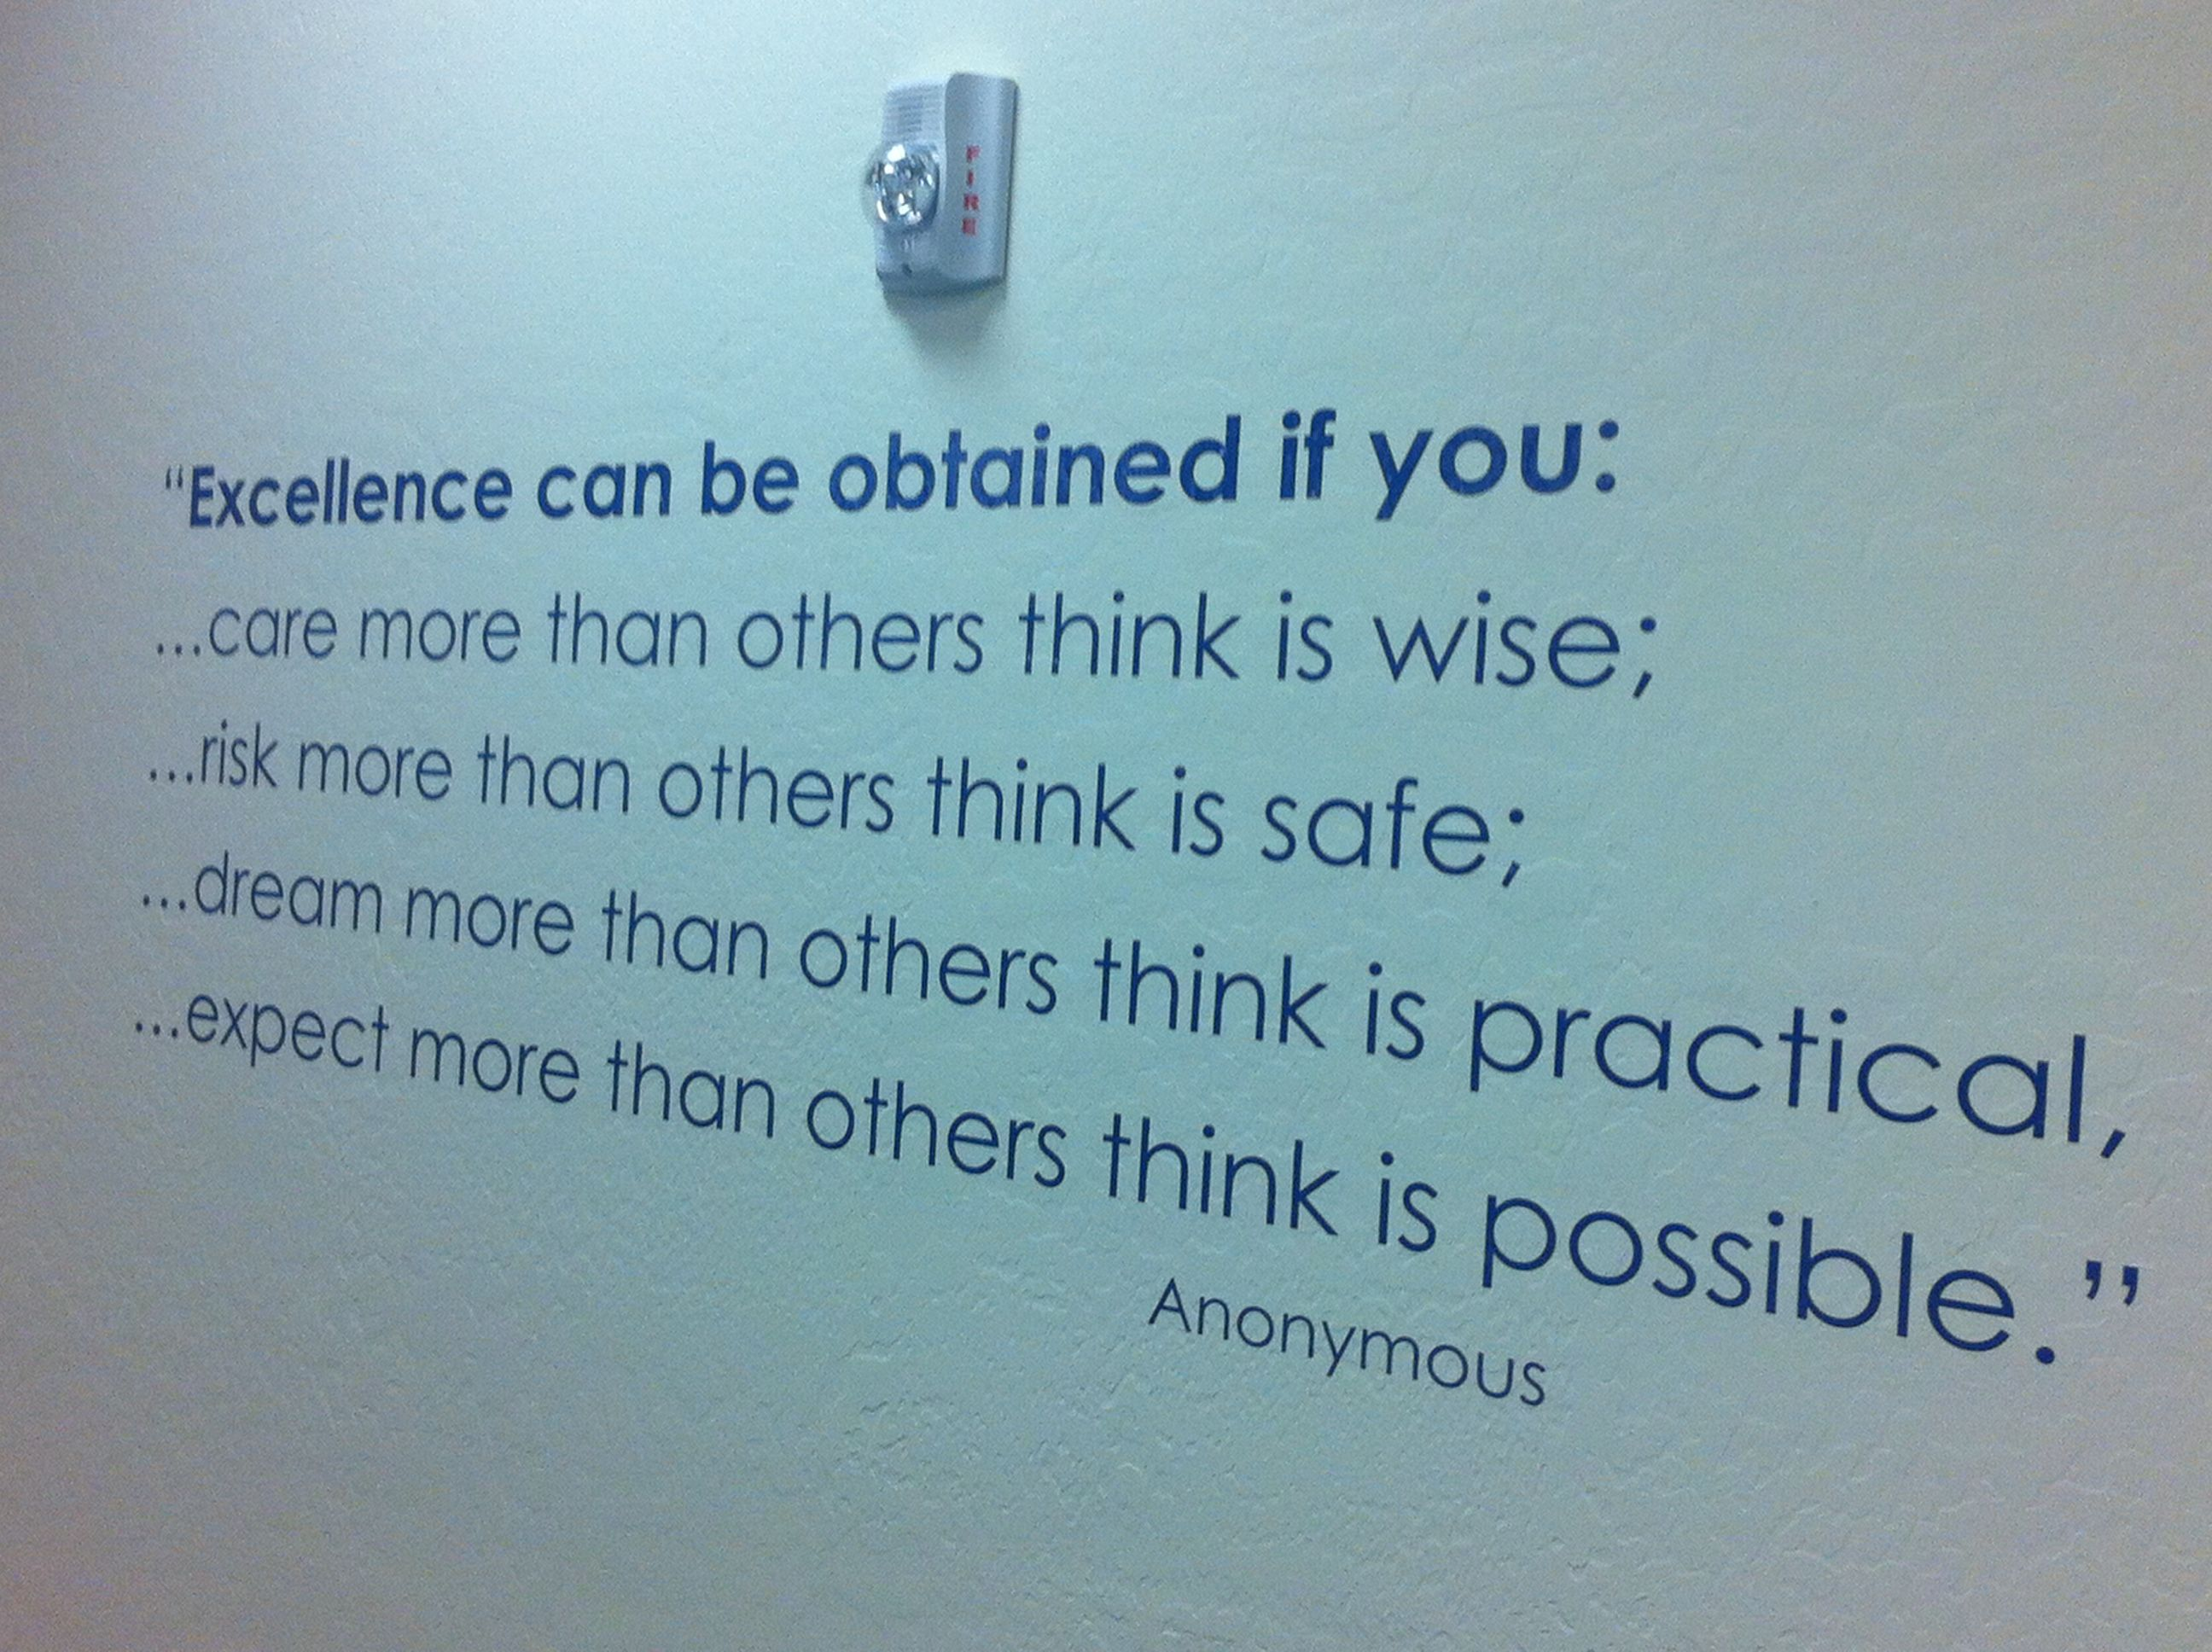 As seen at the small business alliance az office in